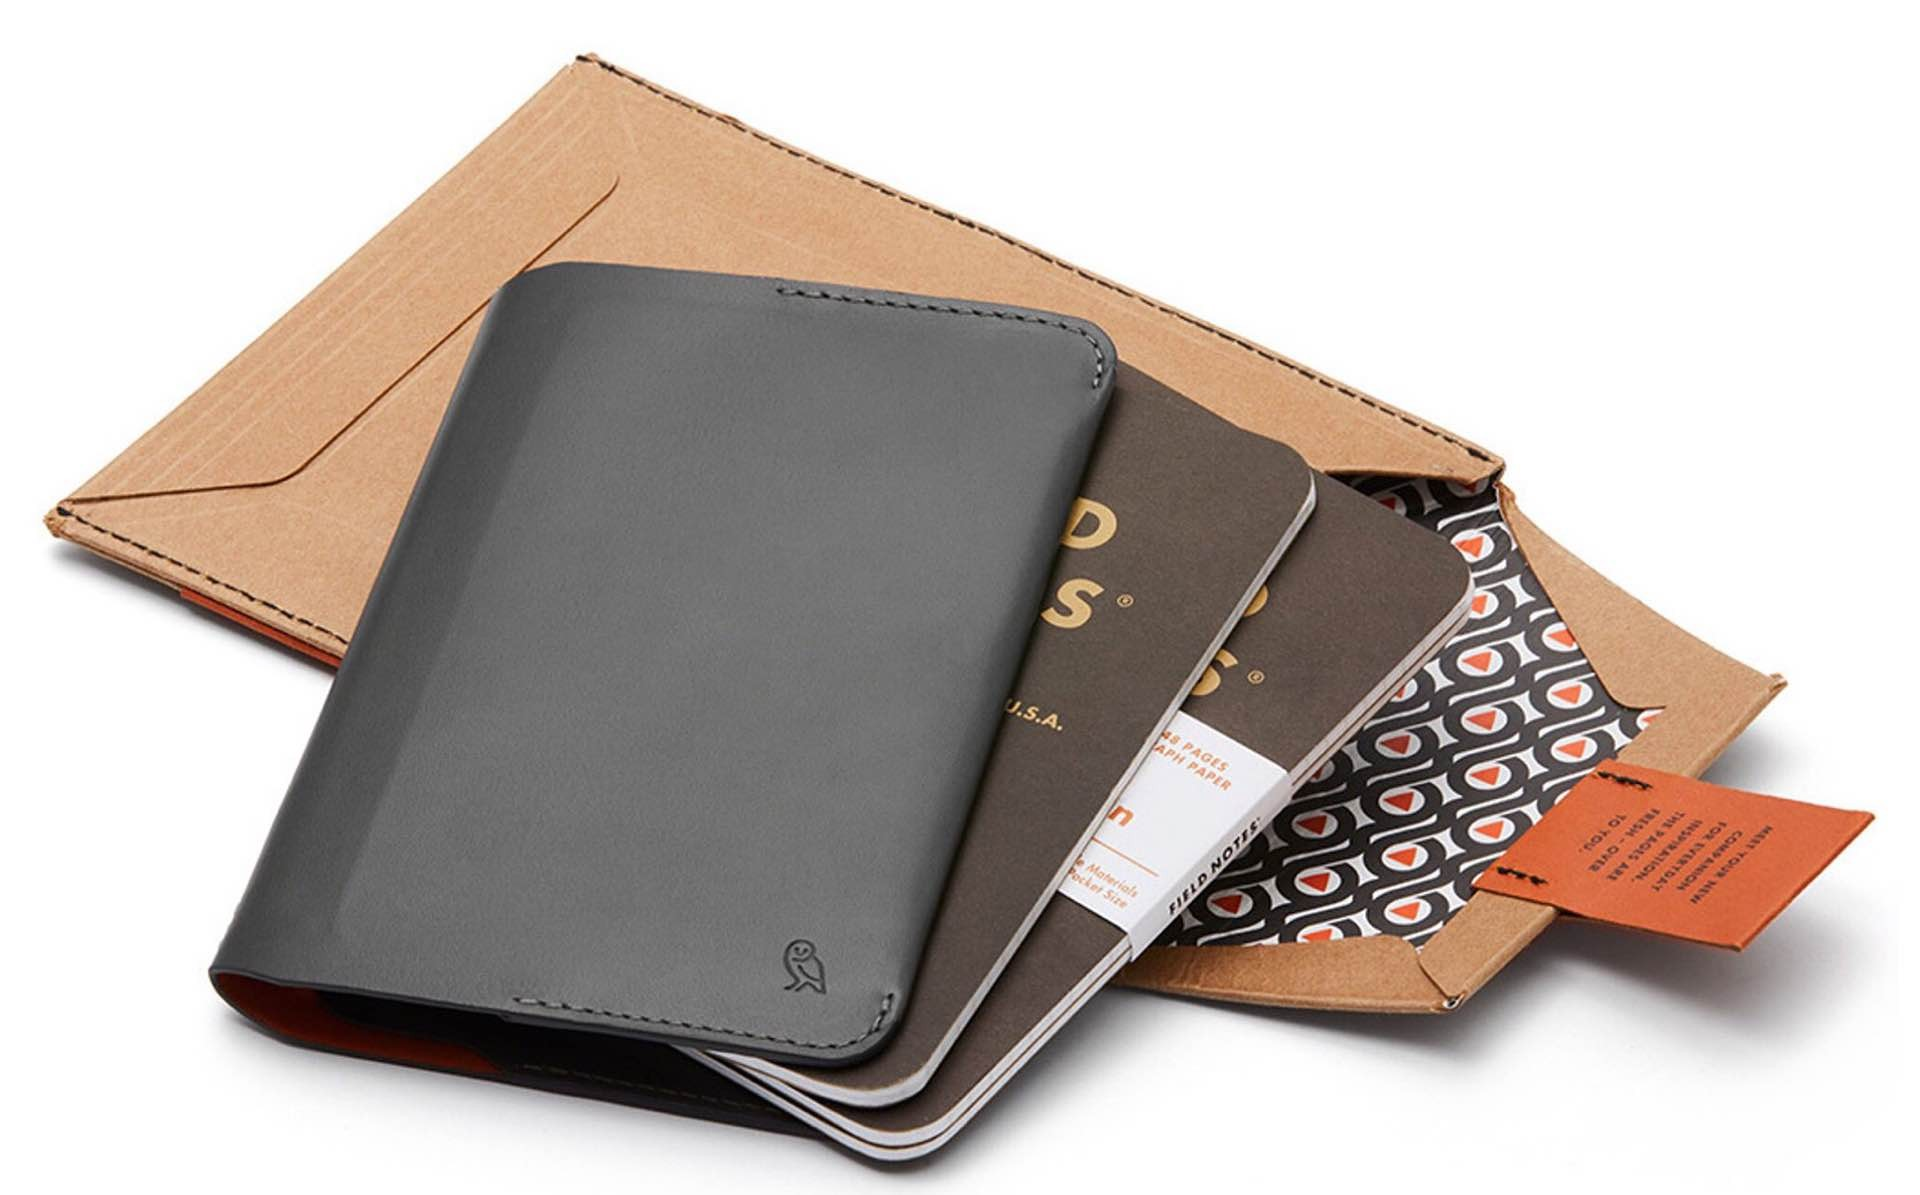 """Field Notes x Bellroy """"Everyday Inspiration"""" Leather Cover and Memo Books"""